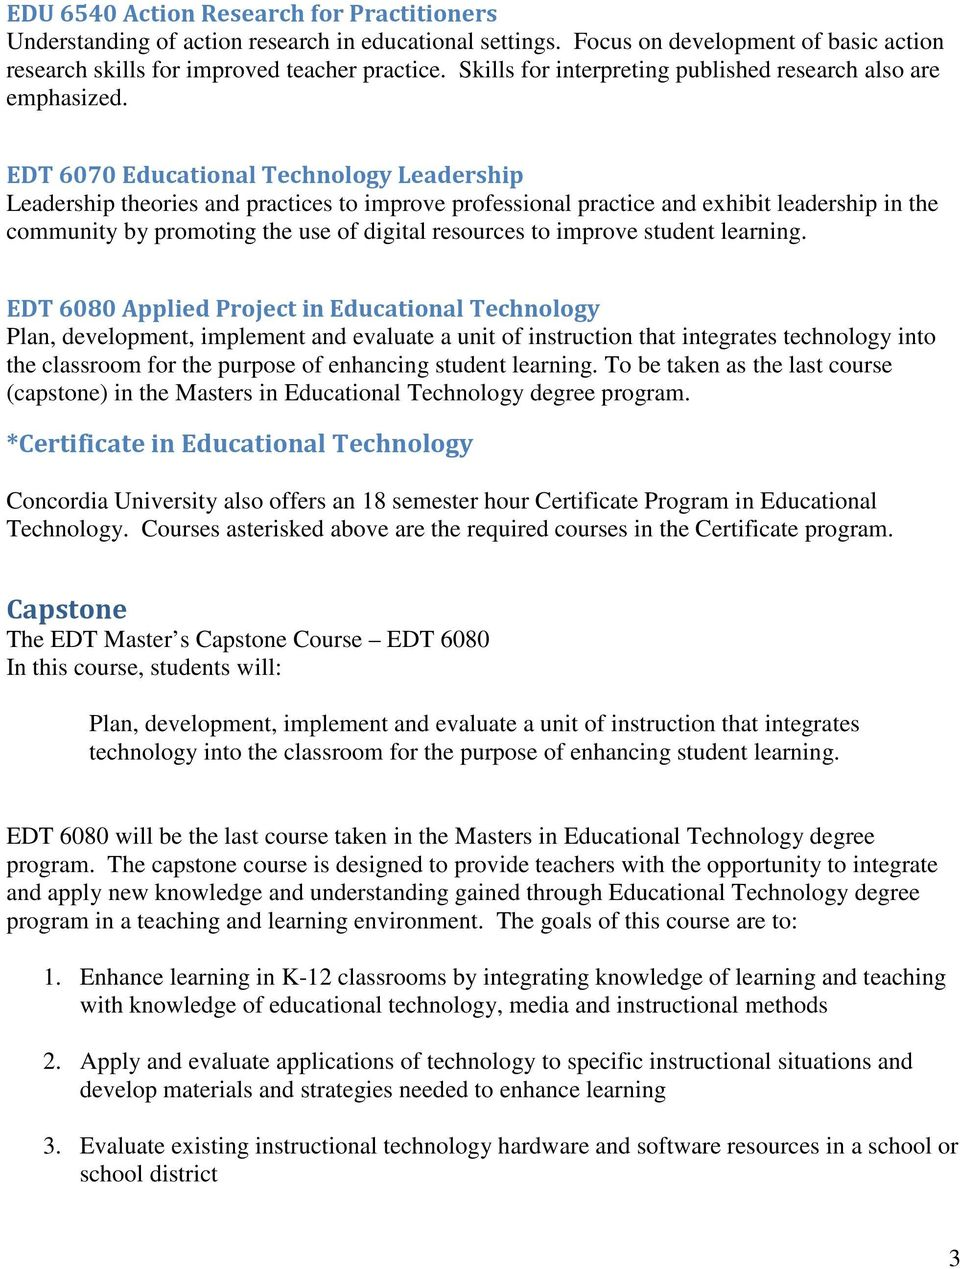 EDT 6070 Educational Technology Leadership Leadership theories and practices to improve professional practice and exhibit leadership in the community by promoting the use of digital resources to